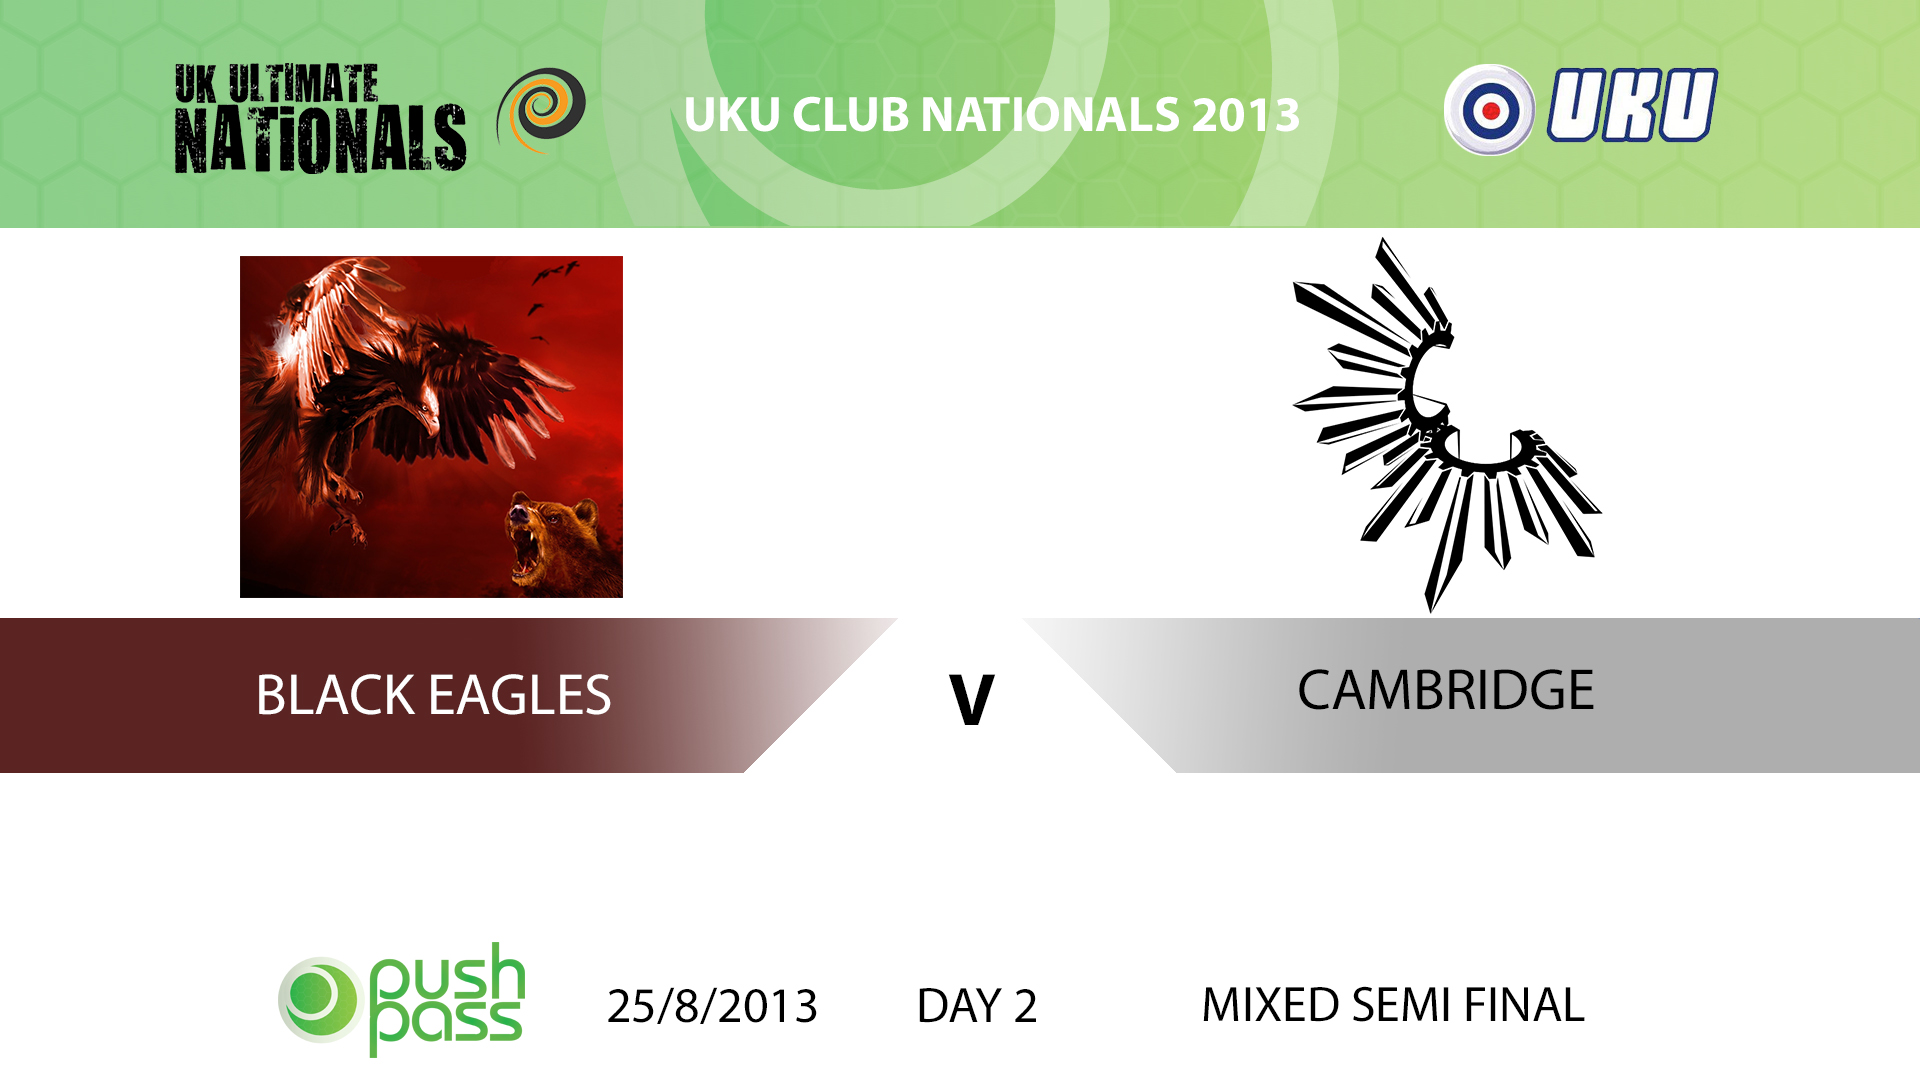 UKU Club Nationals 2013: Black Eagles v Cambridge